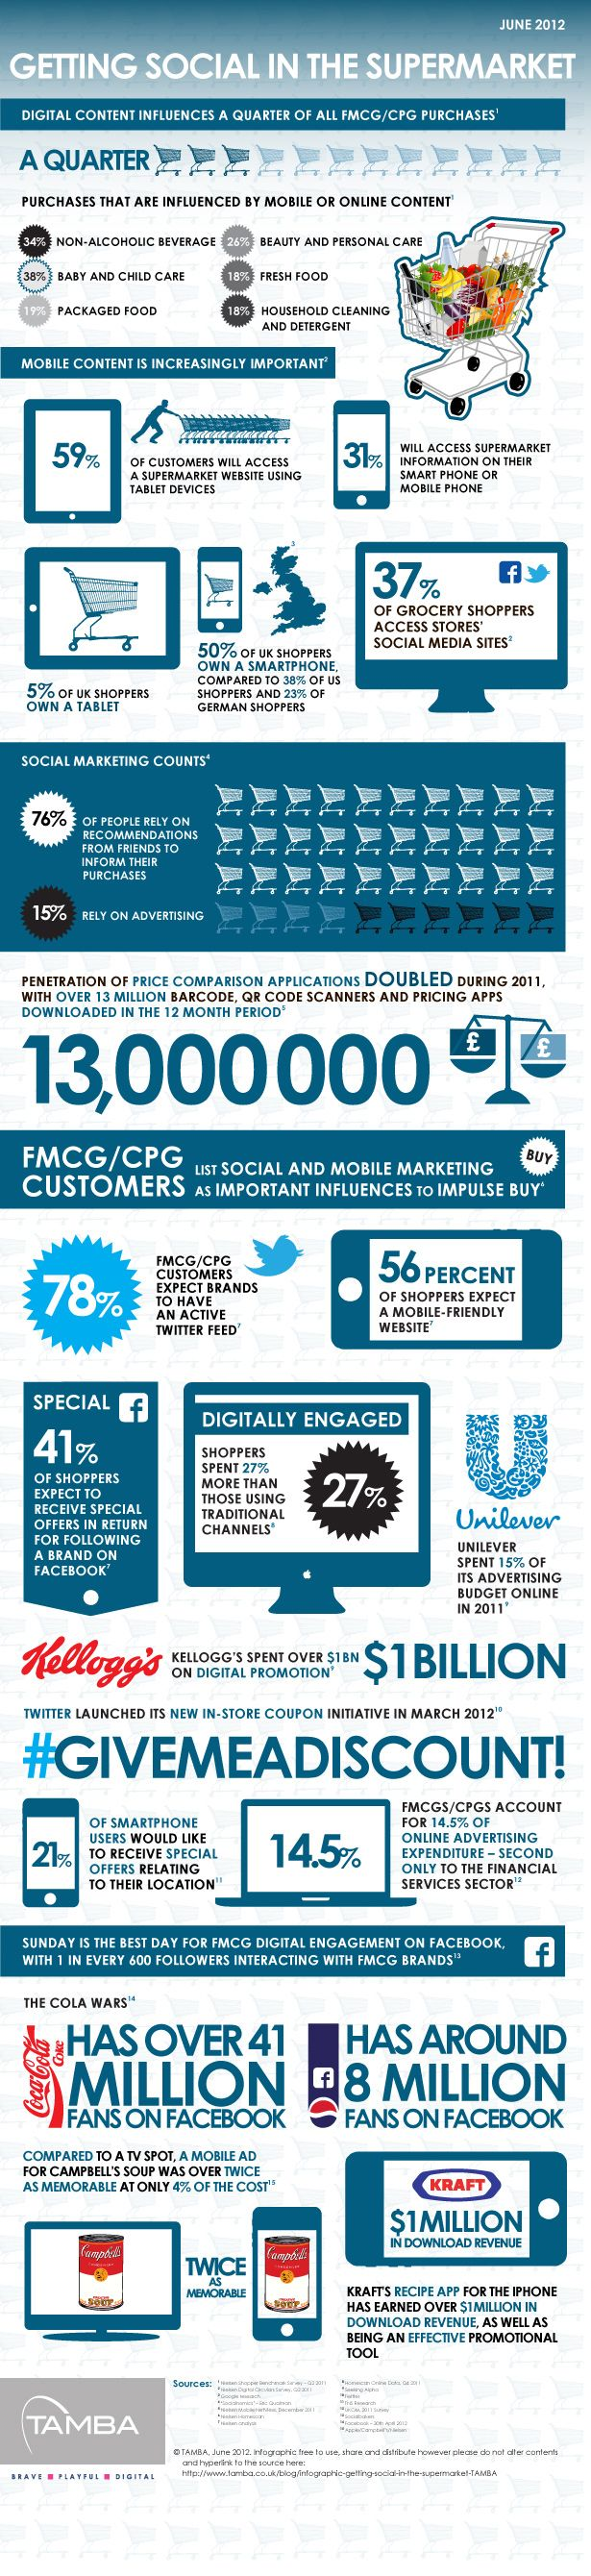 Why social media counts when it comes to FMCG #Infographic